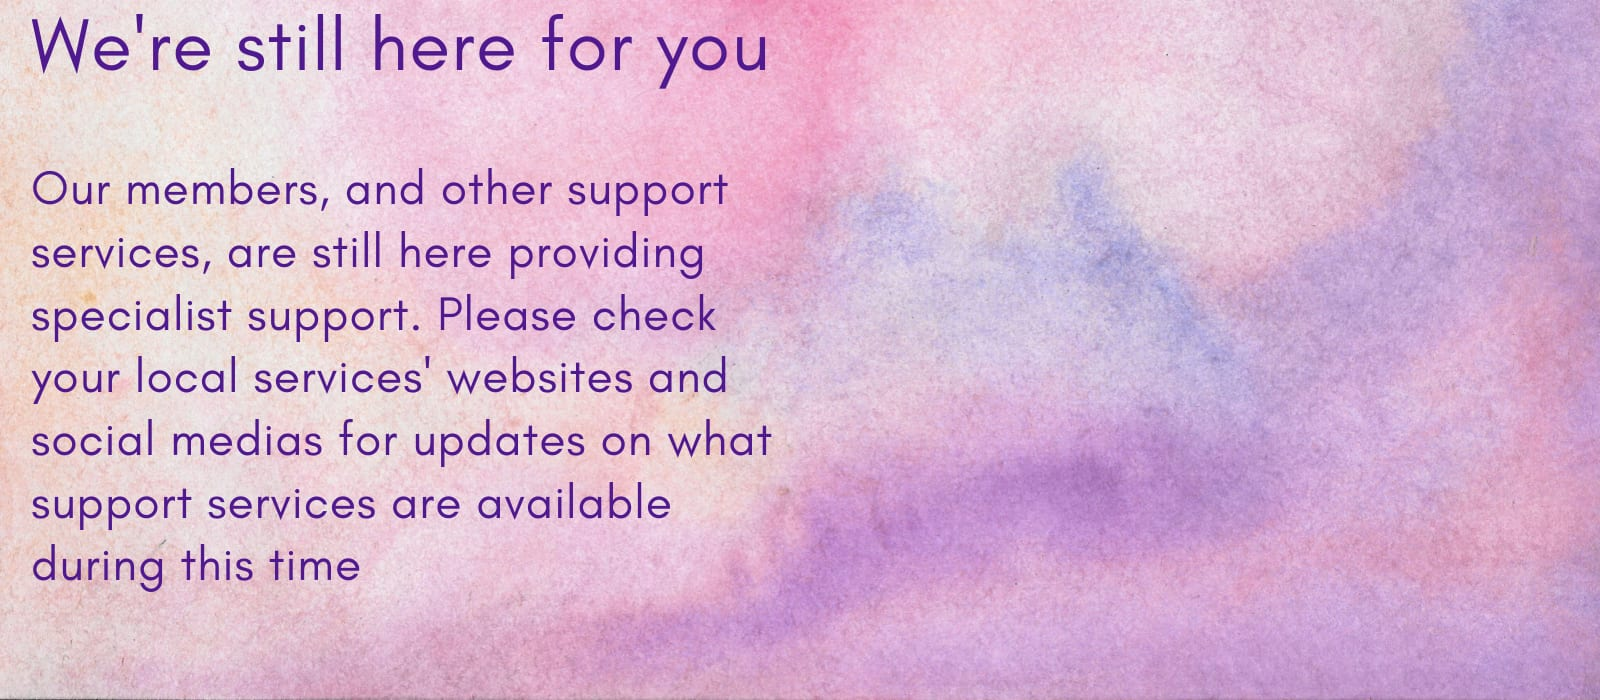 Messages from frontline support services - We are still here